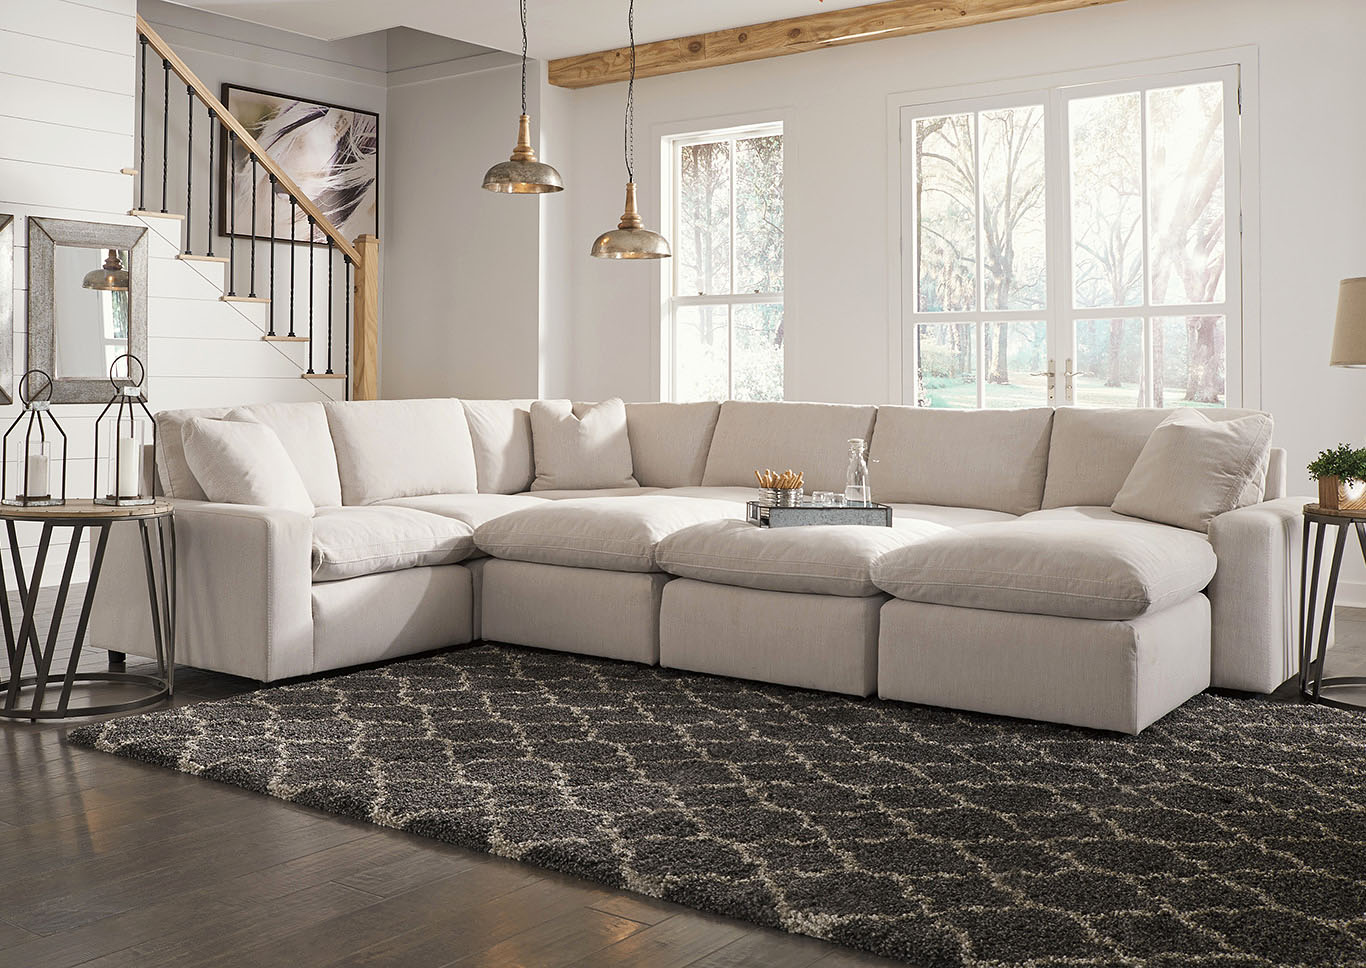 Savesto Ivory 6 Piece Sectional w/3 Ottomans,Signature Design By Ashley